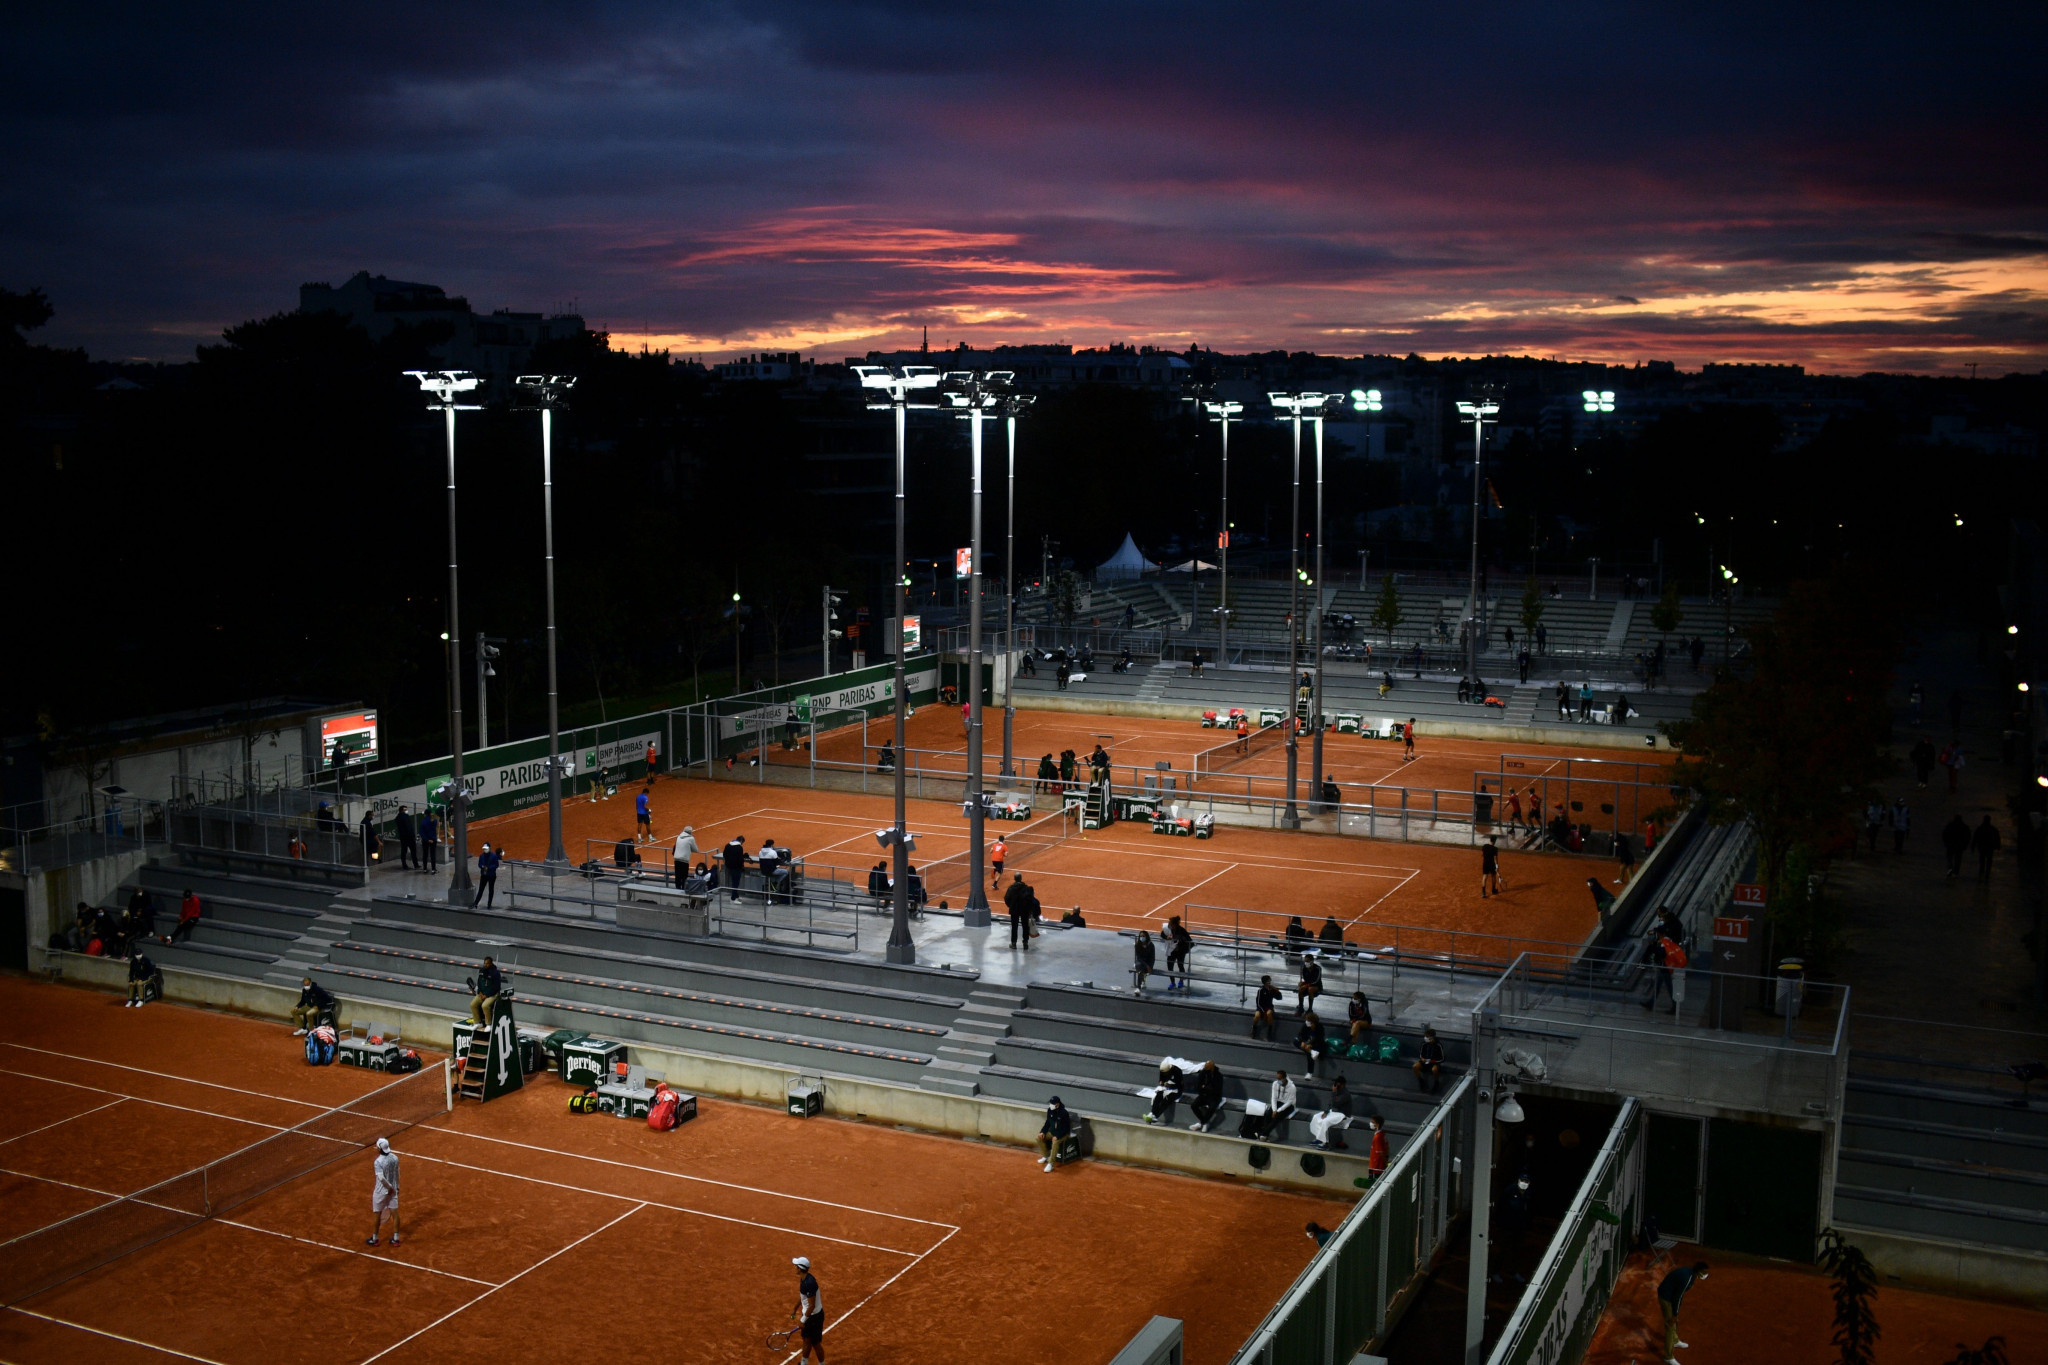 The addition of floodlights to the Roland Garros complex has allowed matches to continue late into the evening ©Getty Images